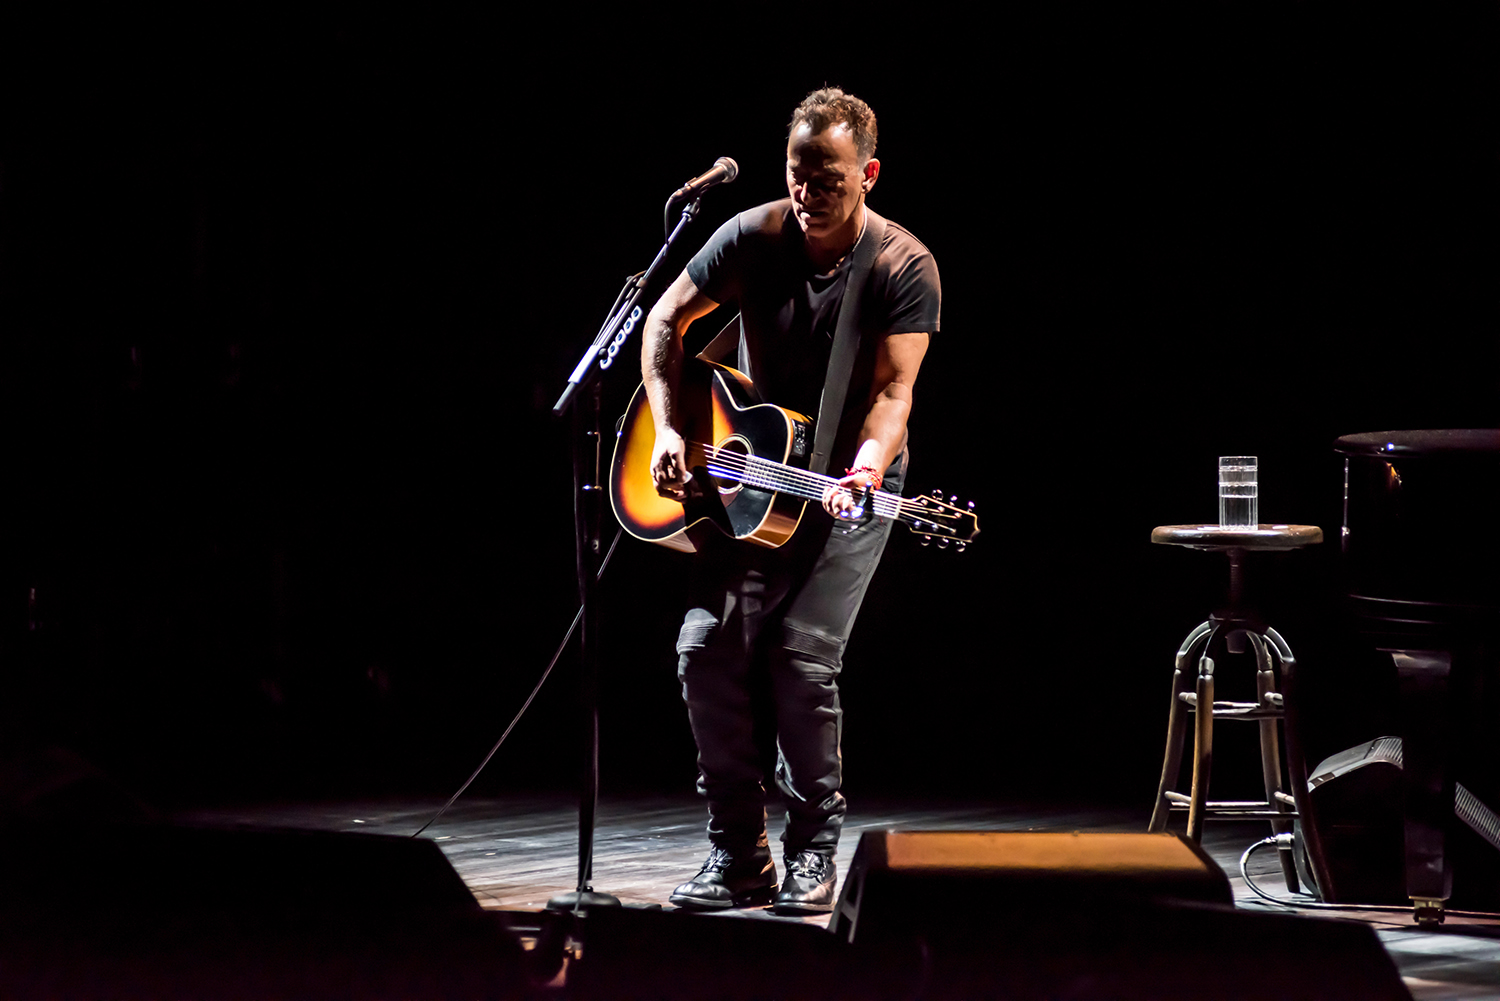 Springsteen on Broadway, Bruce íntimo